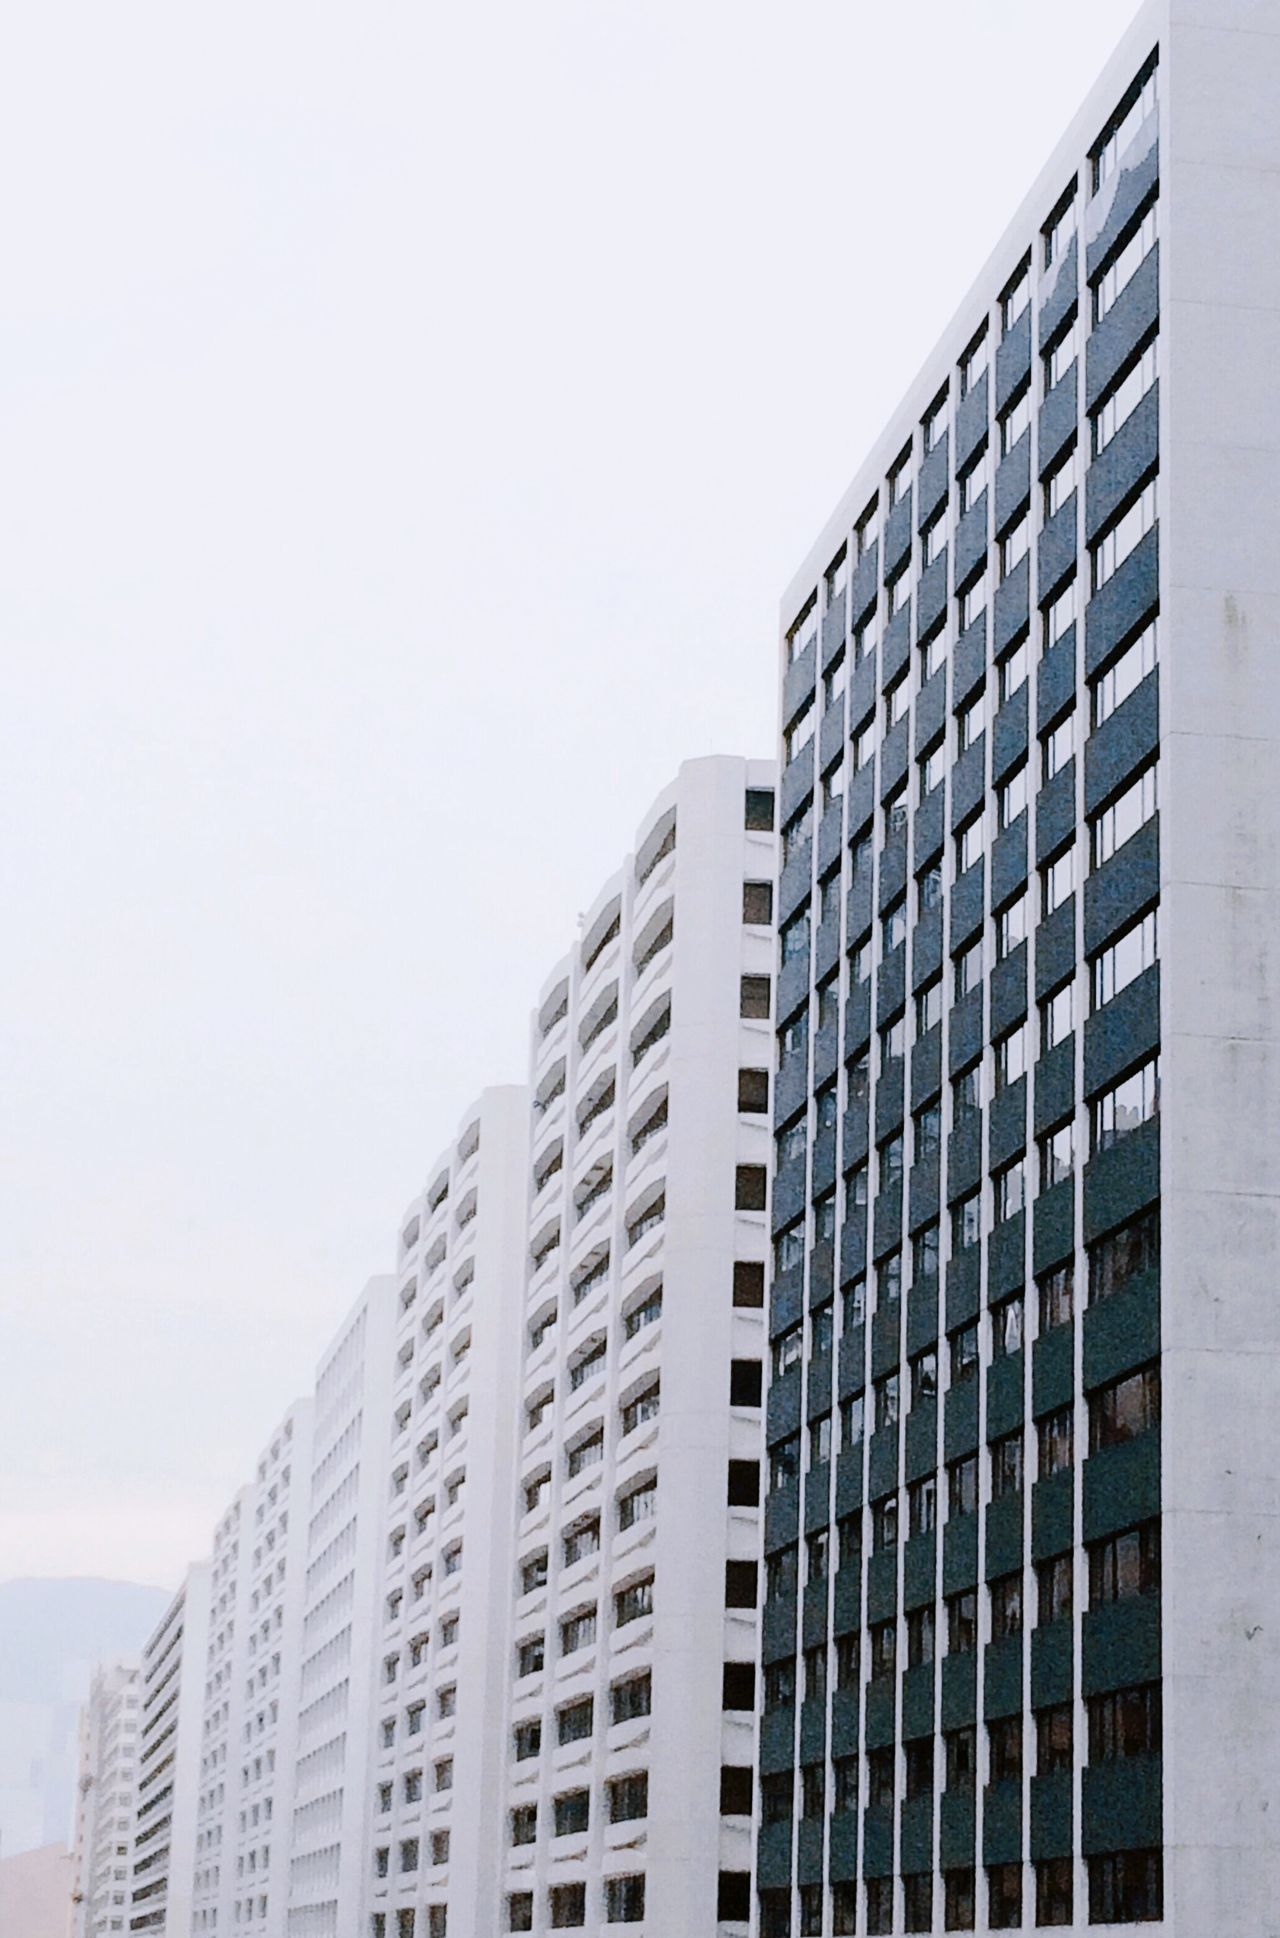 Architecture Building Exterior Skyscraper Built Structure City Minimalism White Perspective HongKong No People Window Modern Low Angle View Day Outdoors